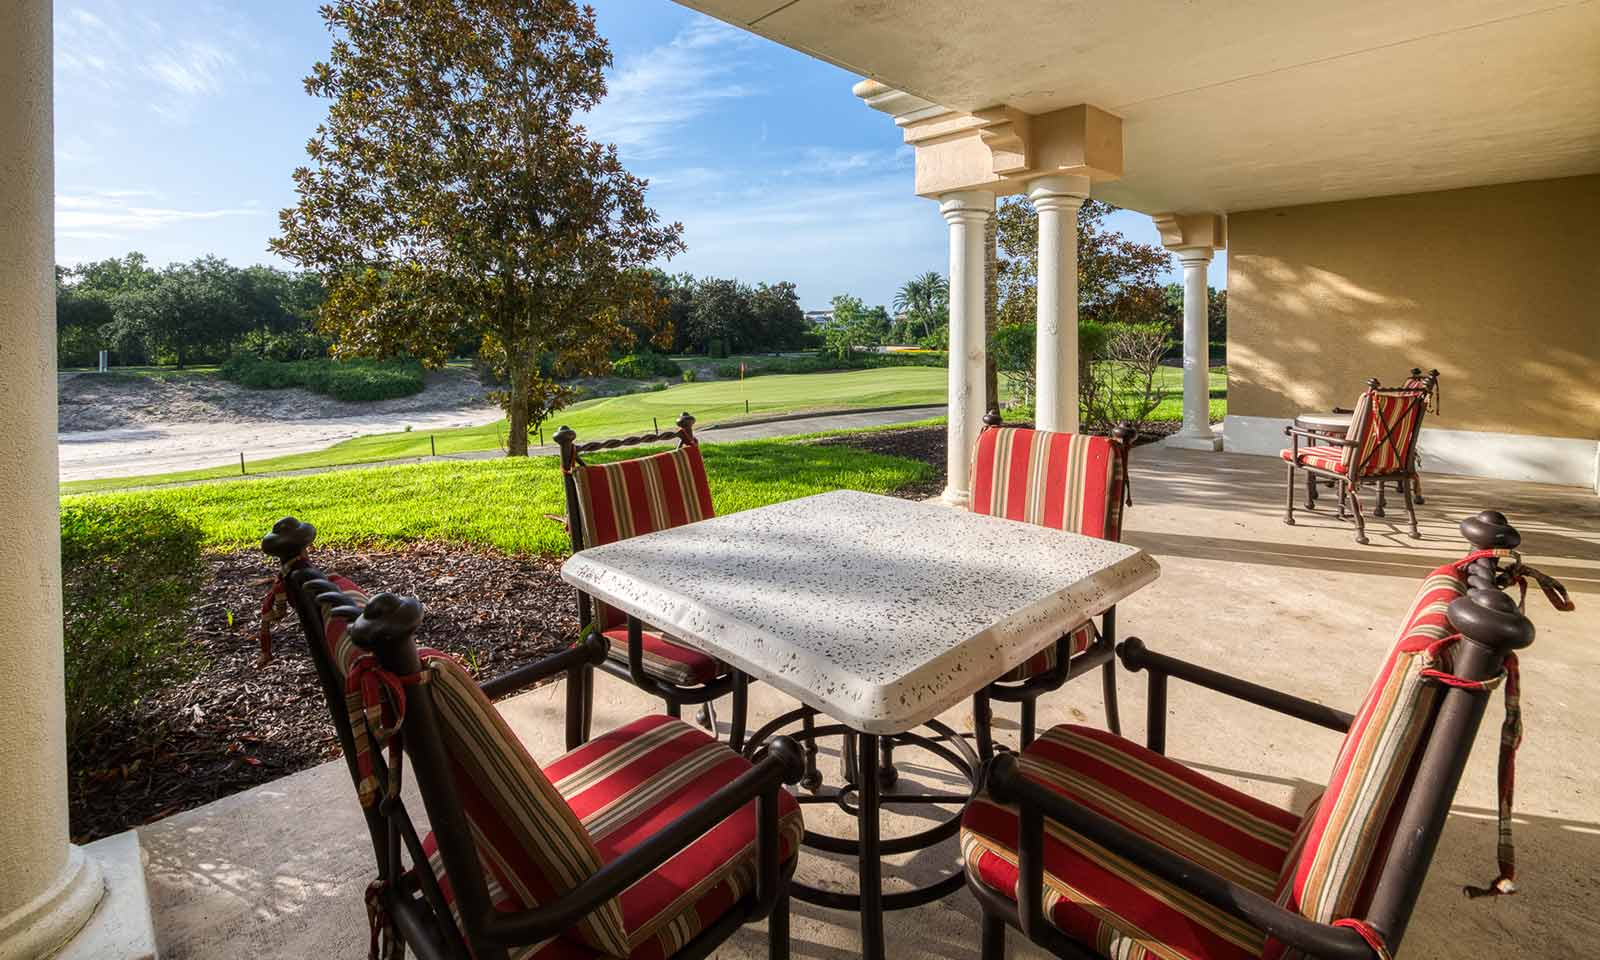 [amenities:Patio-With-View:1] Patio with View